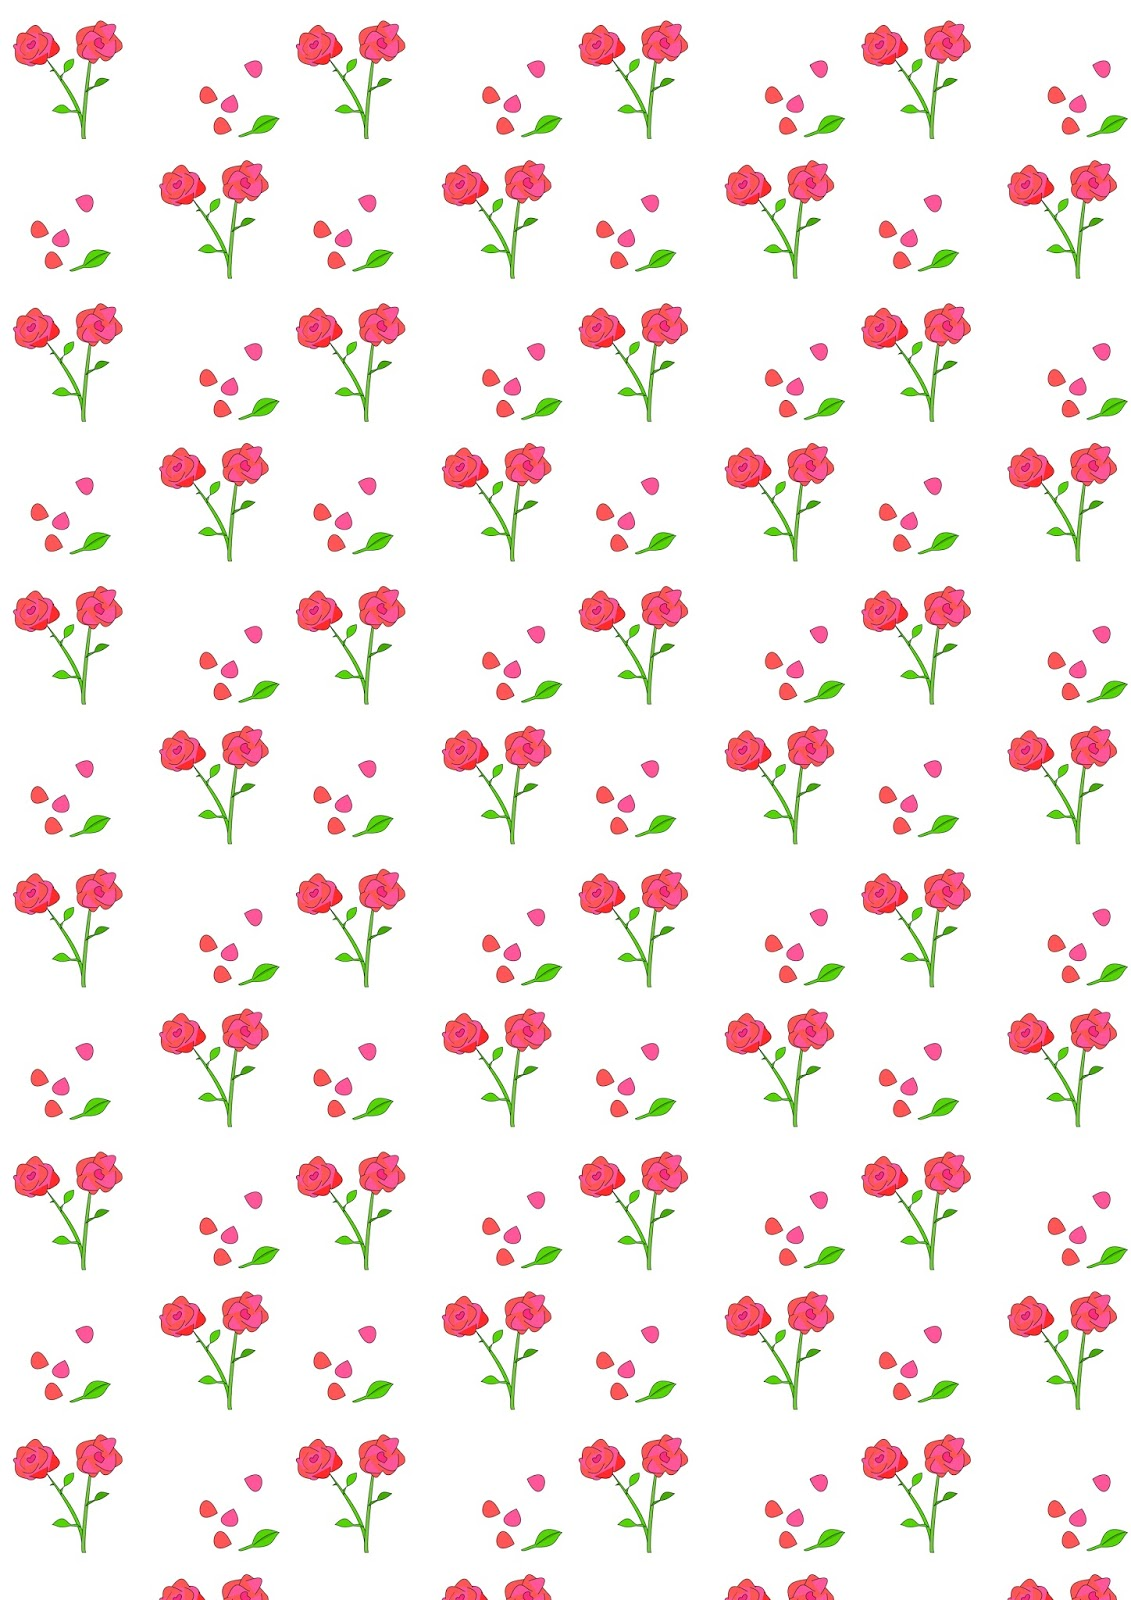 Eloquent image in printable pattern paper